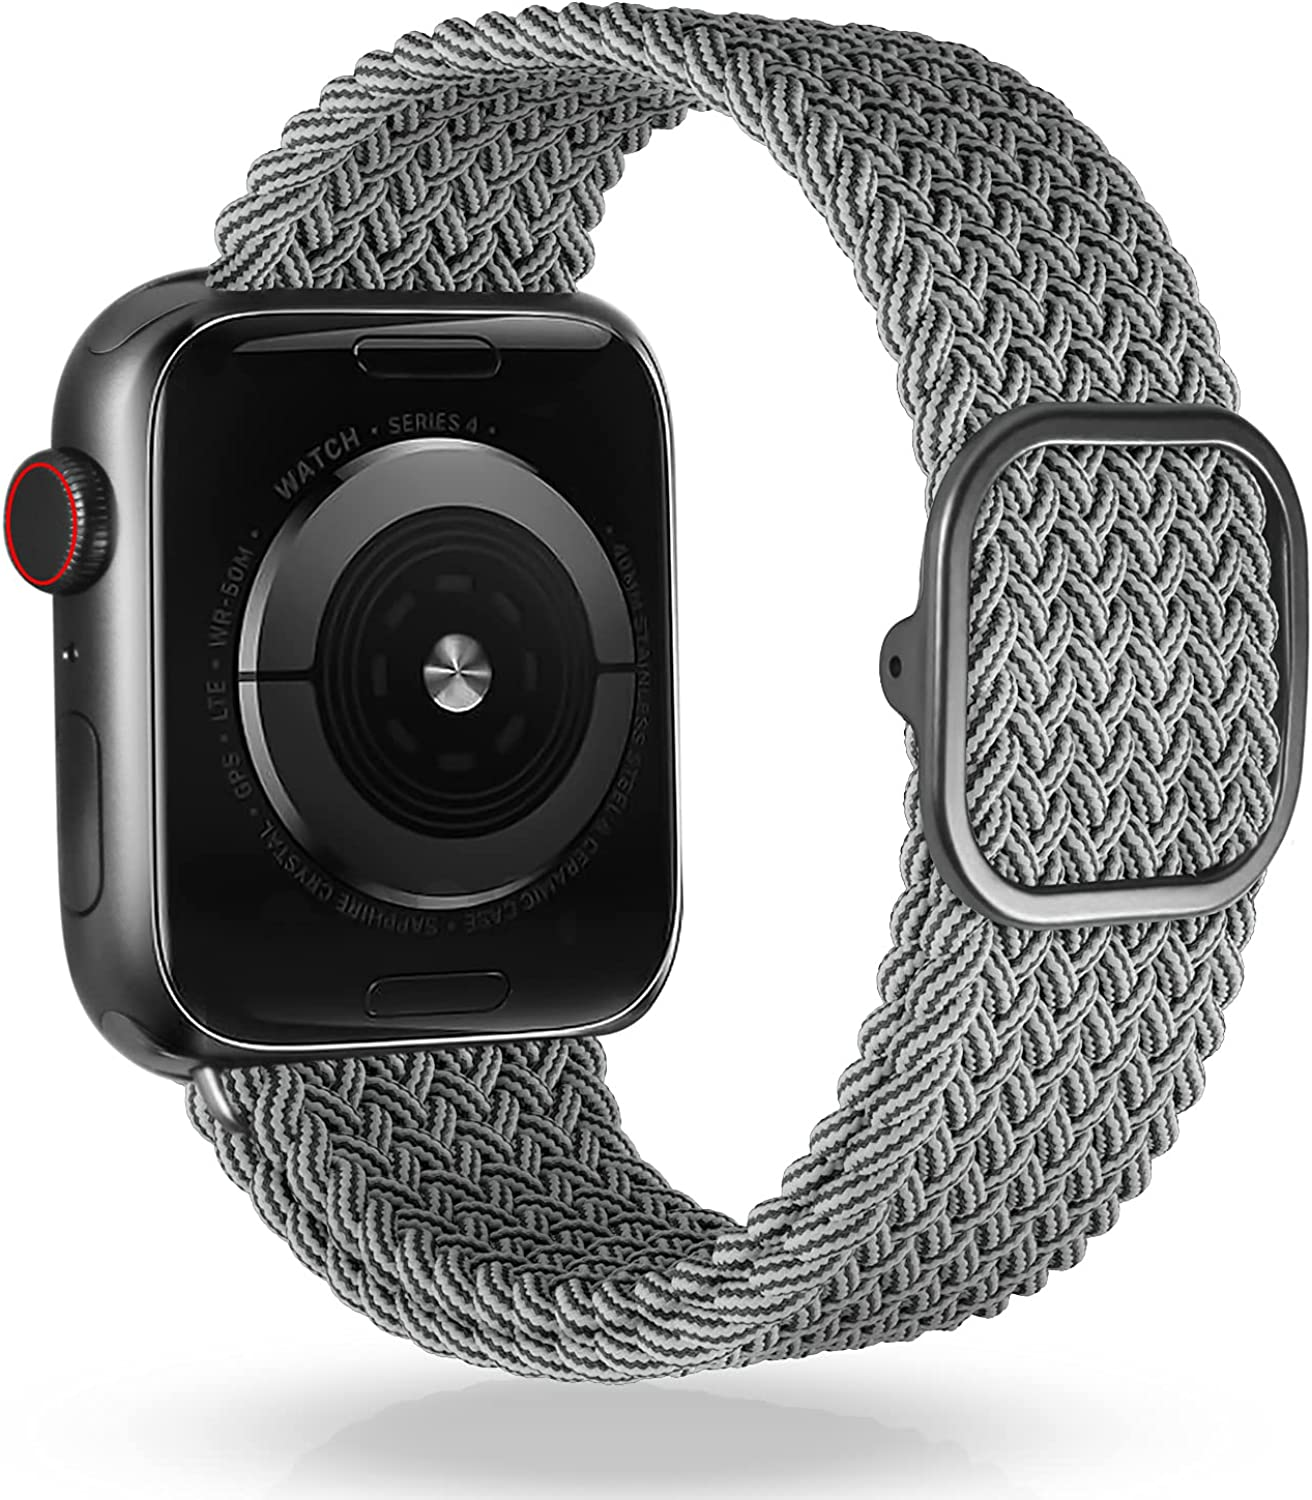 VEESIMI Braided Elastic Watch Band Compatible with Apple Watch Band 38mm 40mm 42mm 44mm, Stretchy Strap with One-hand Adjustable Buckle, Compatible for iWatch Bands Series SE 6/5/4/3/2/1 Women & men